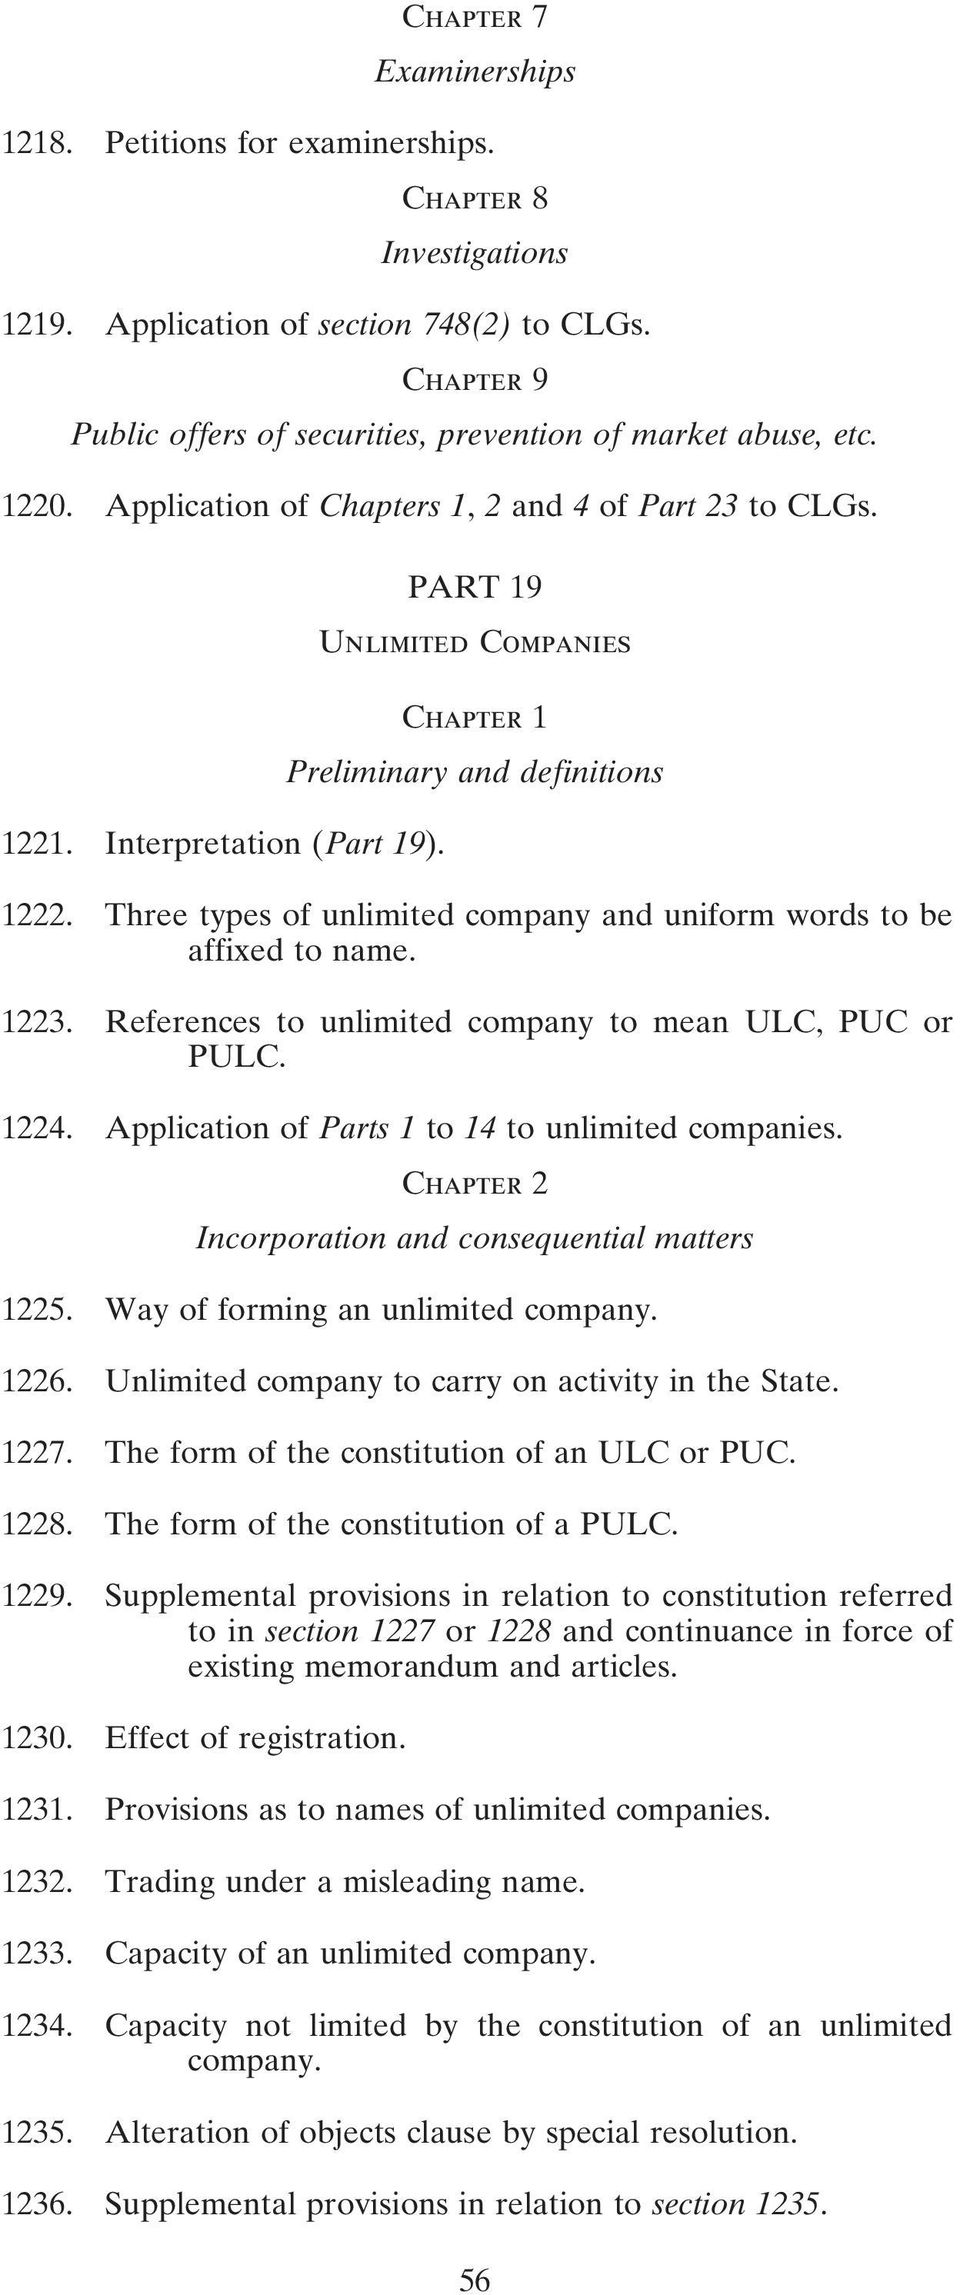 Three types of unlimited company and uniform words to be affixed to name. 1223. References to unlimited company to mean ULC, PUC or PULC. 1224. Application of Parts 1 to 14 to unlimited companies.